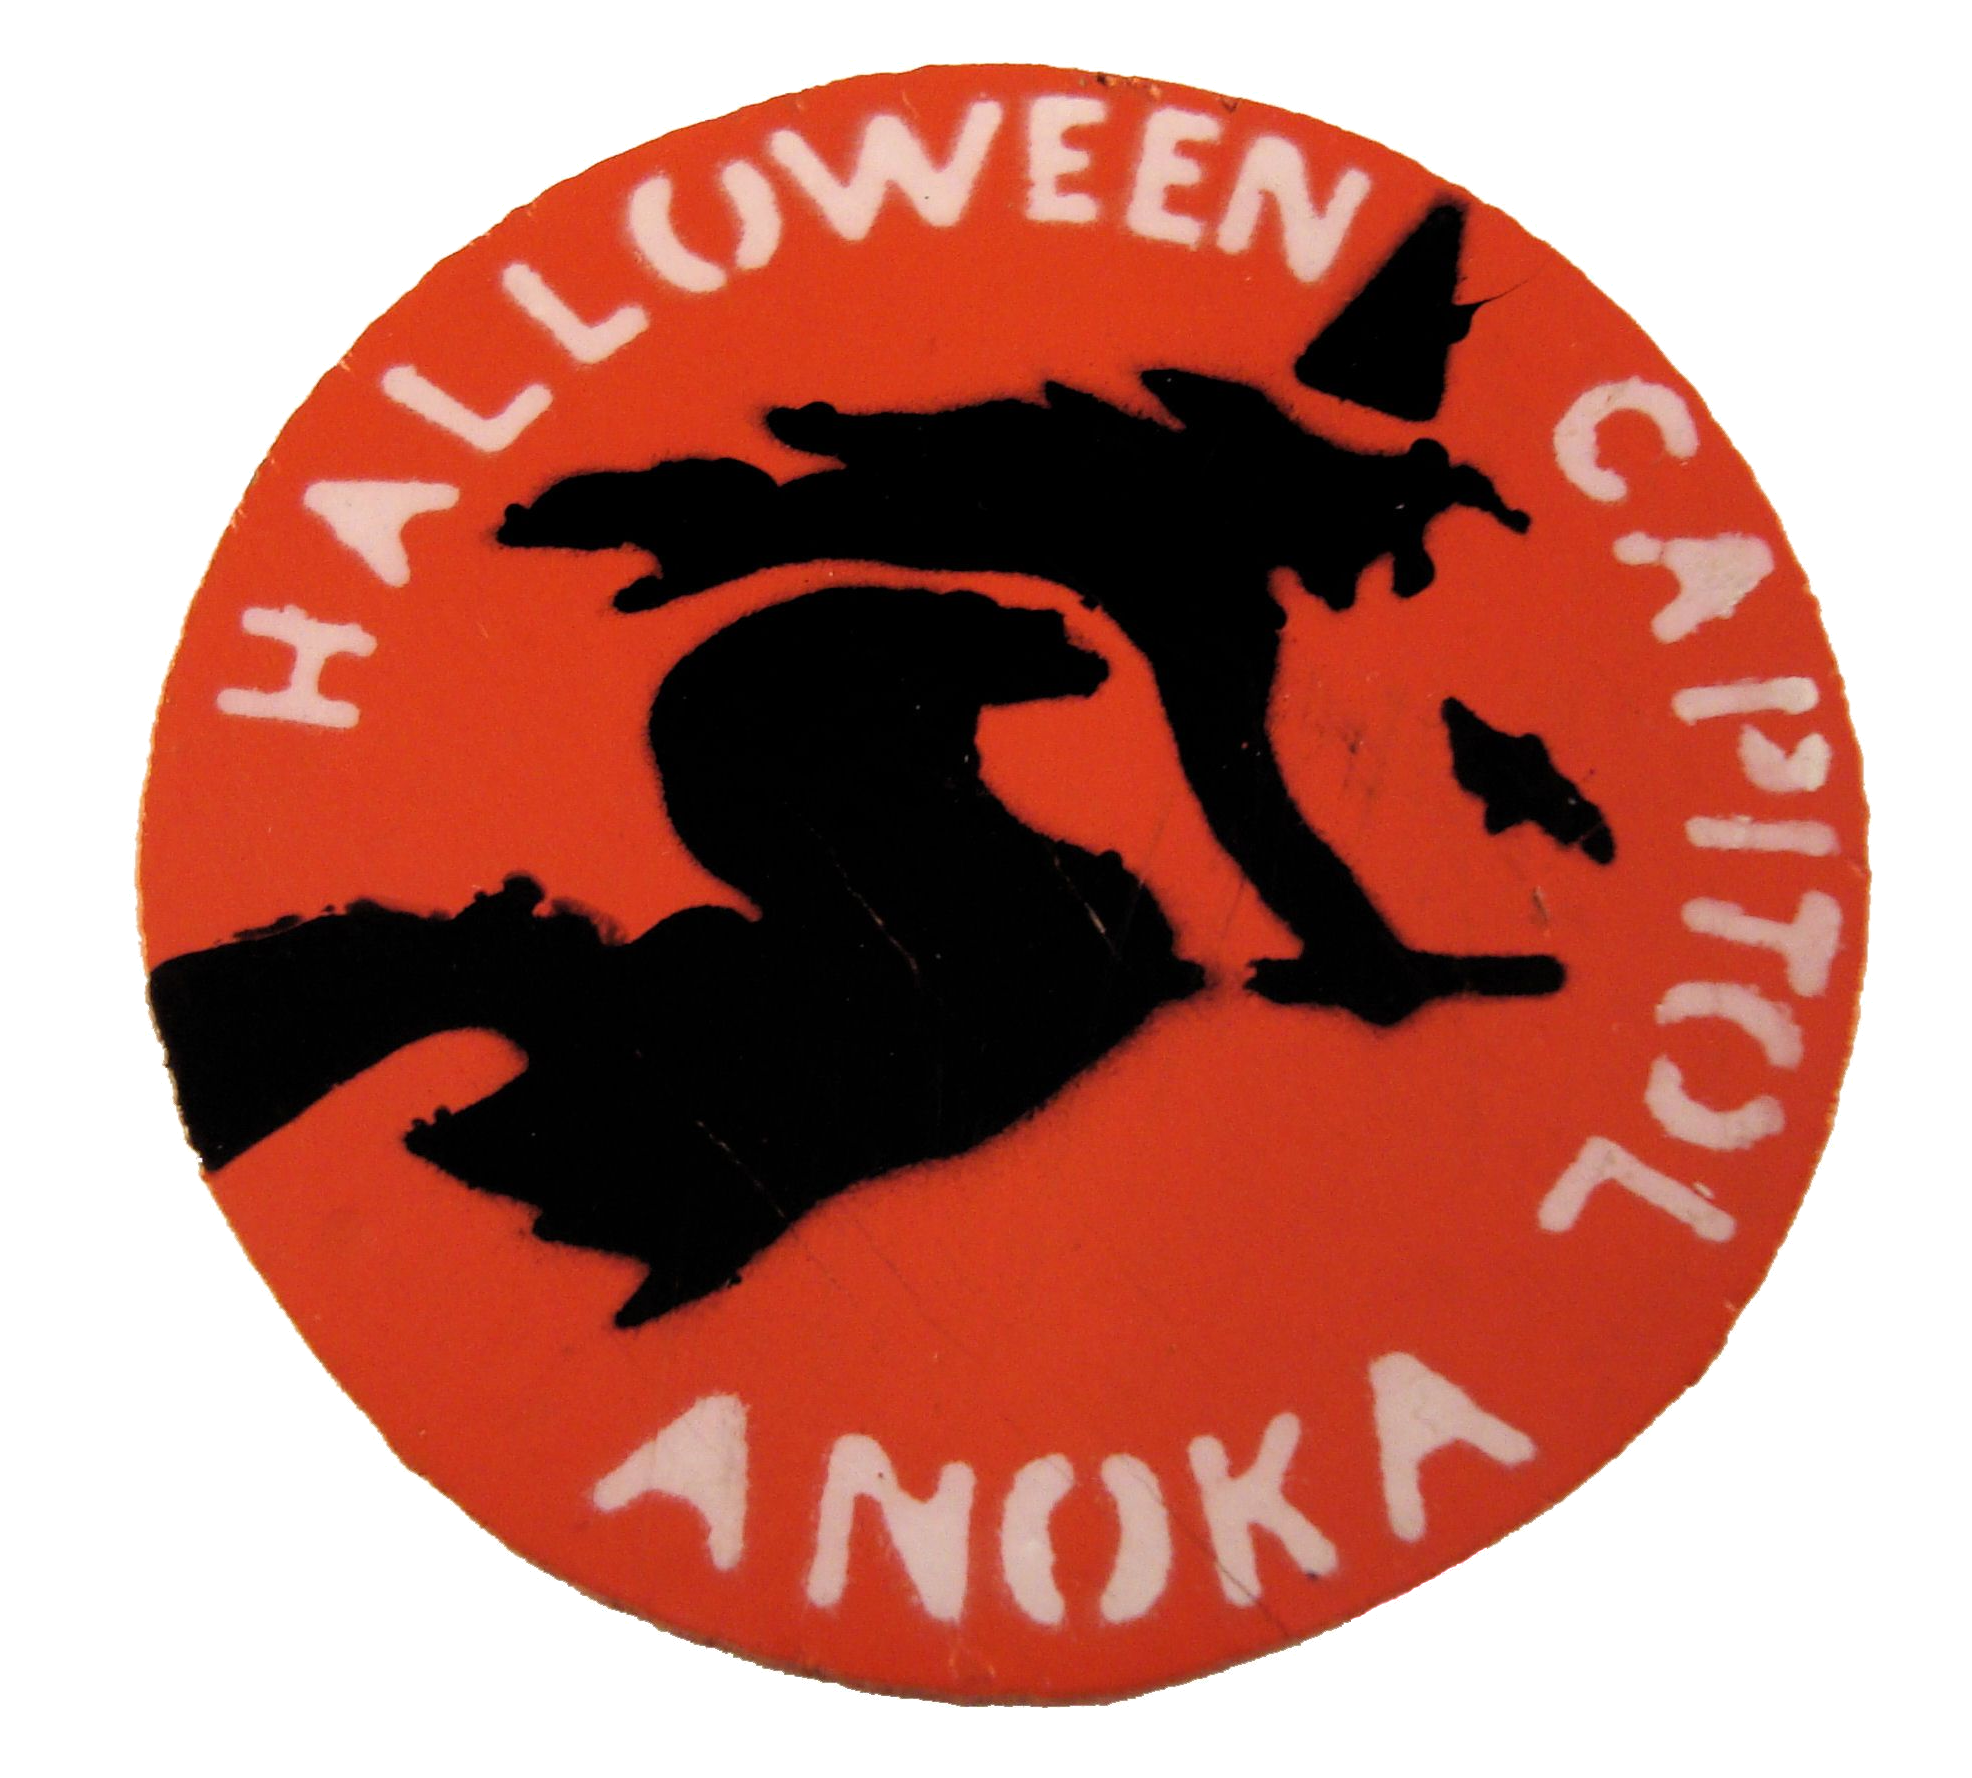 1940-HalloweenButton.png